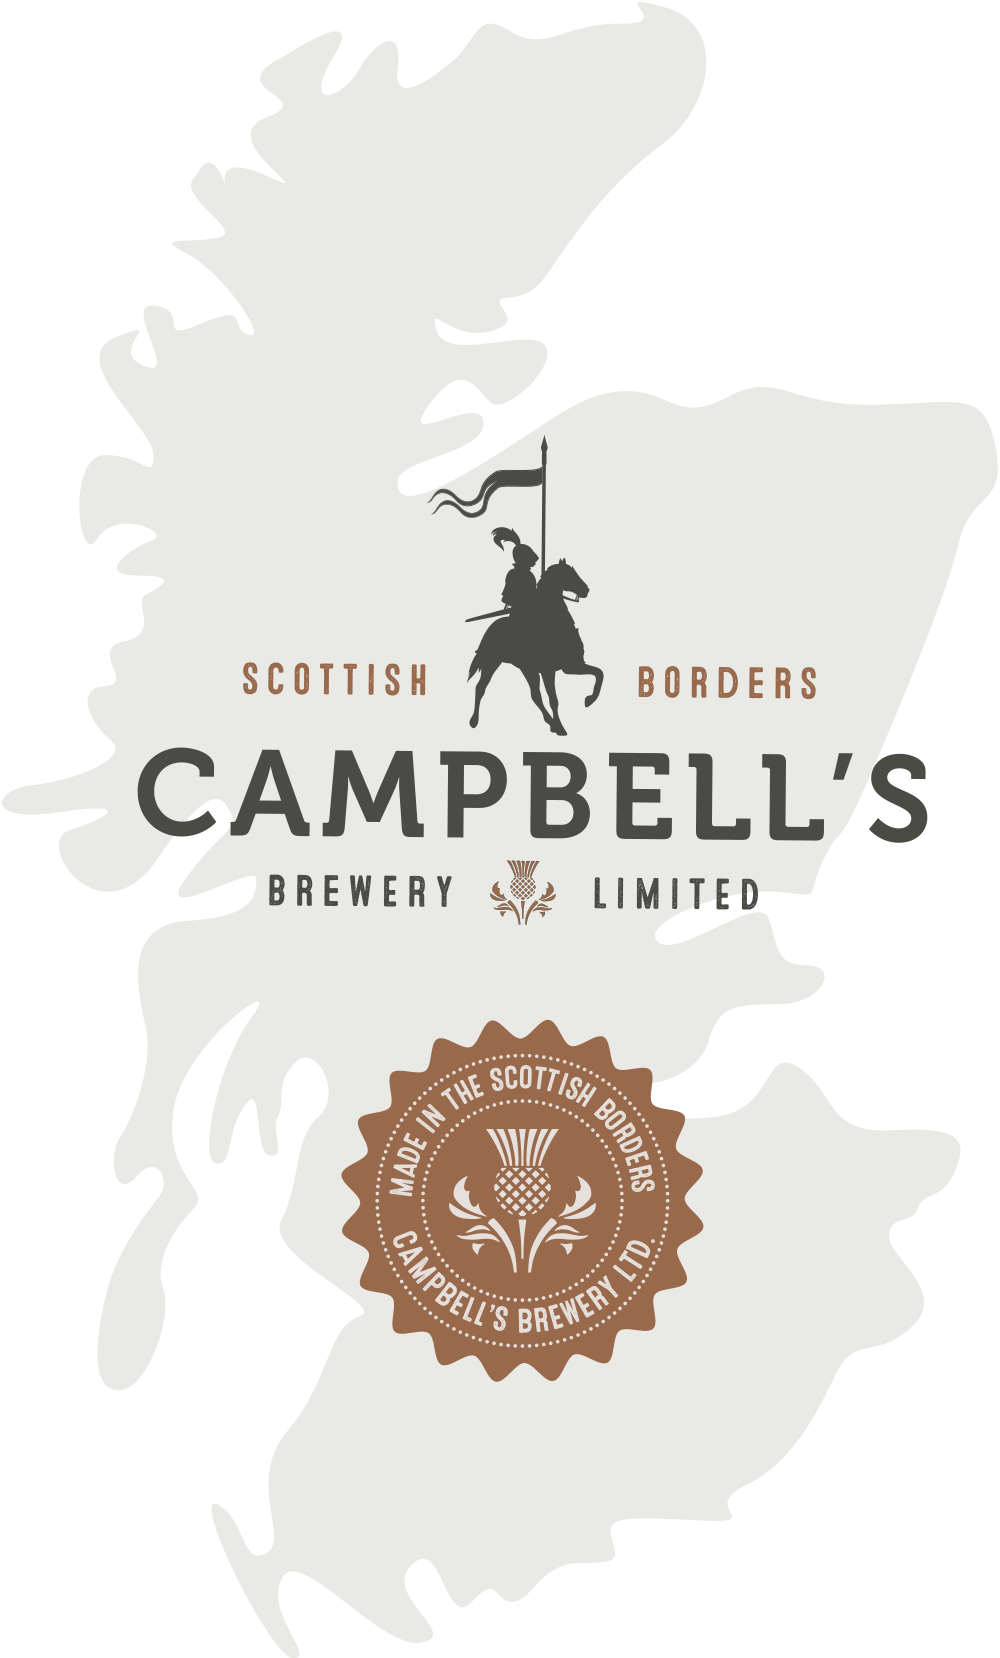 Campbell's Brewery logo